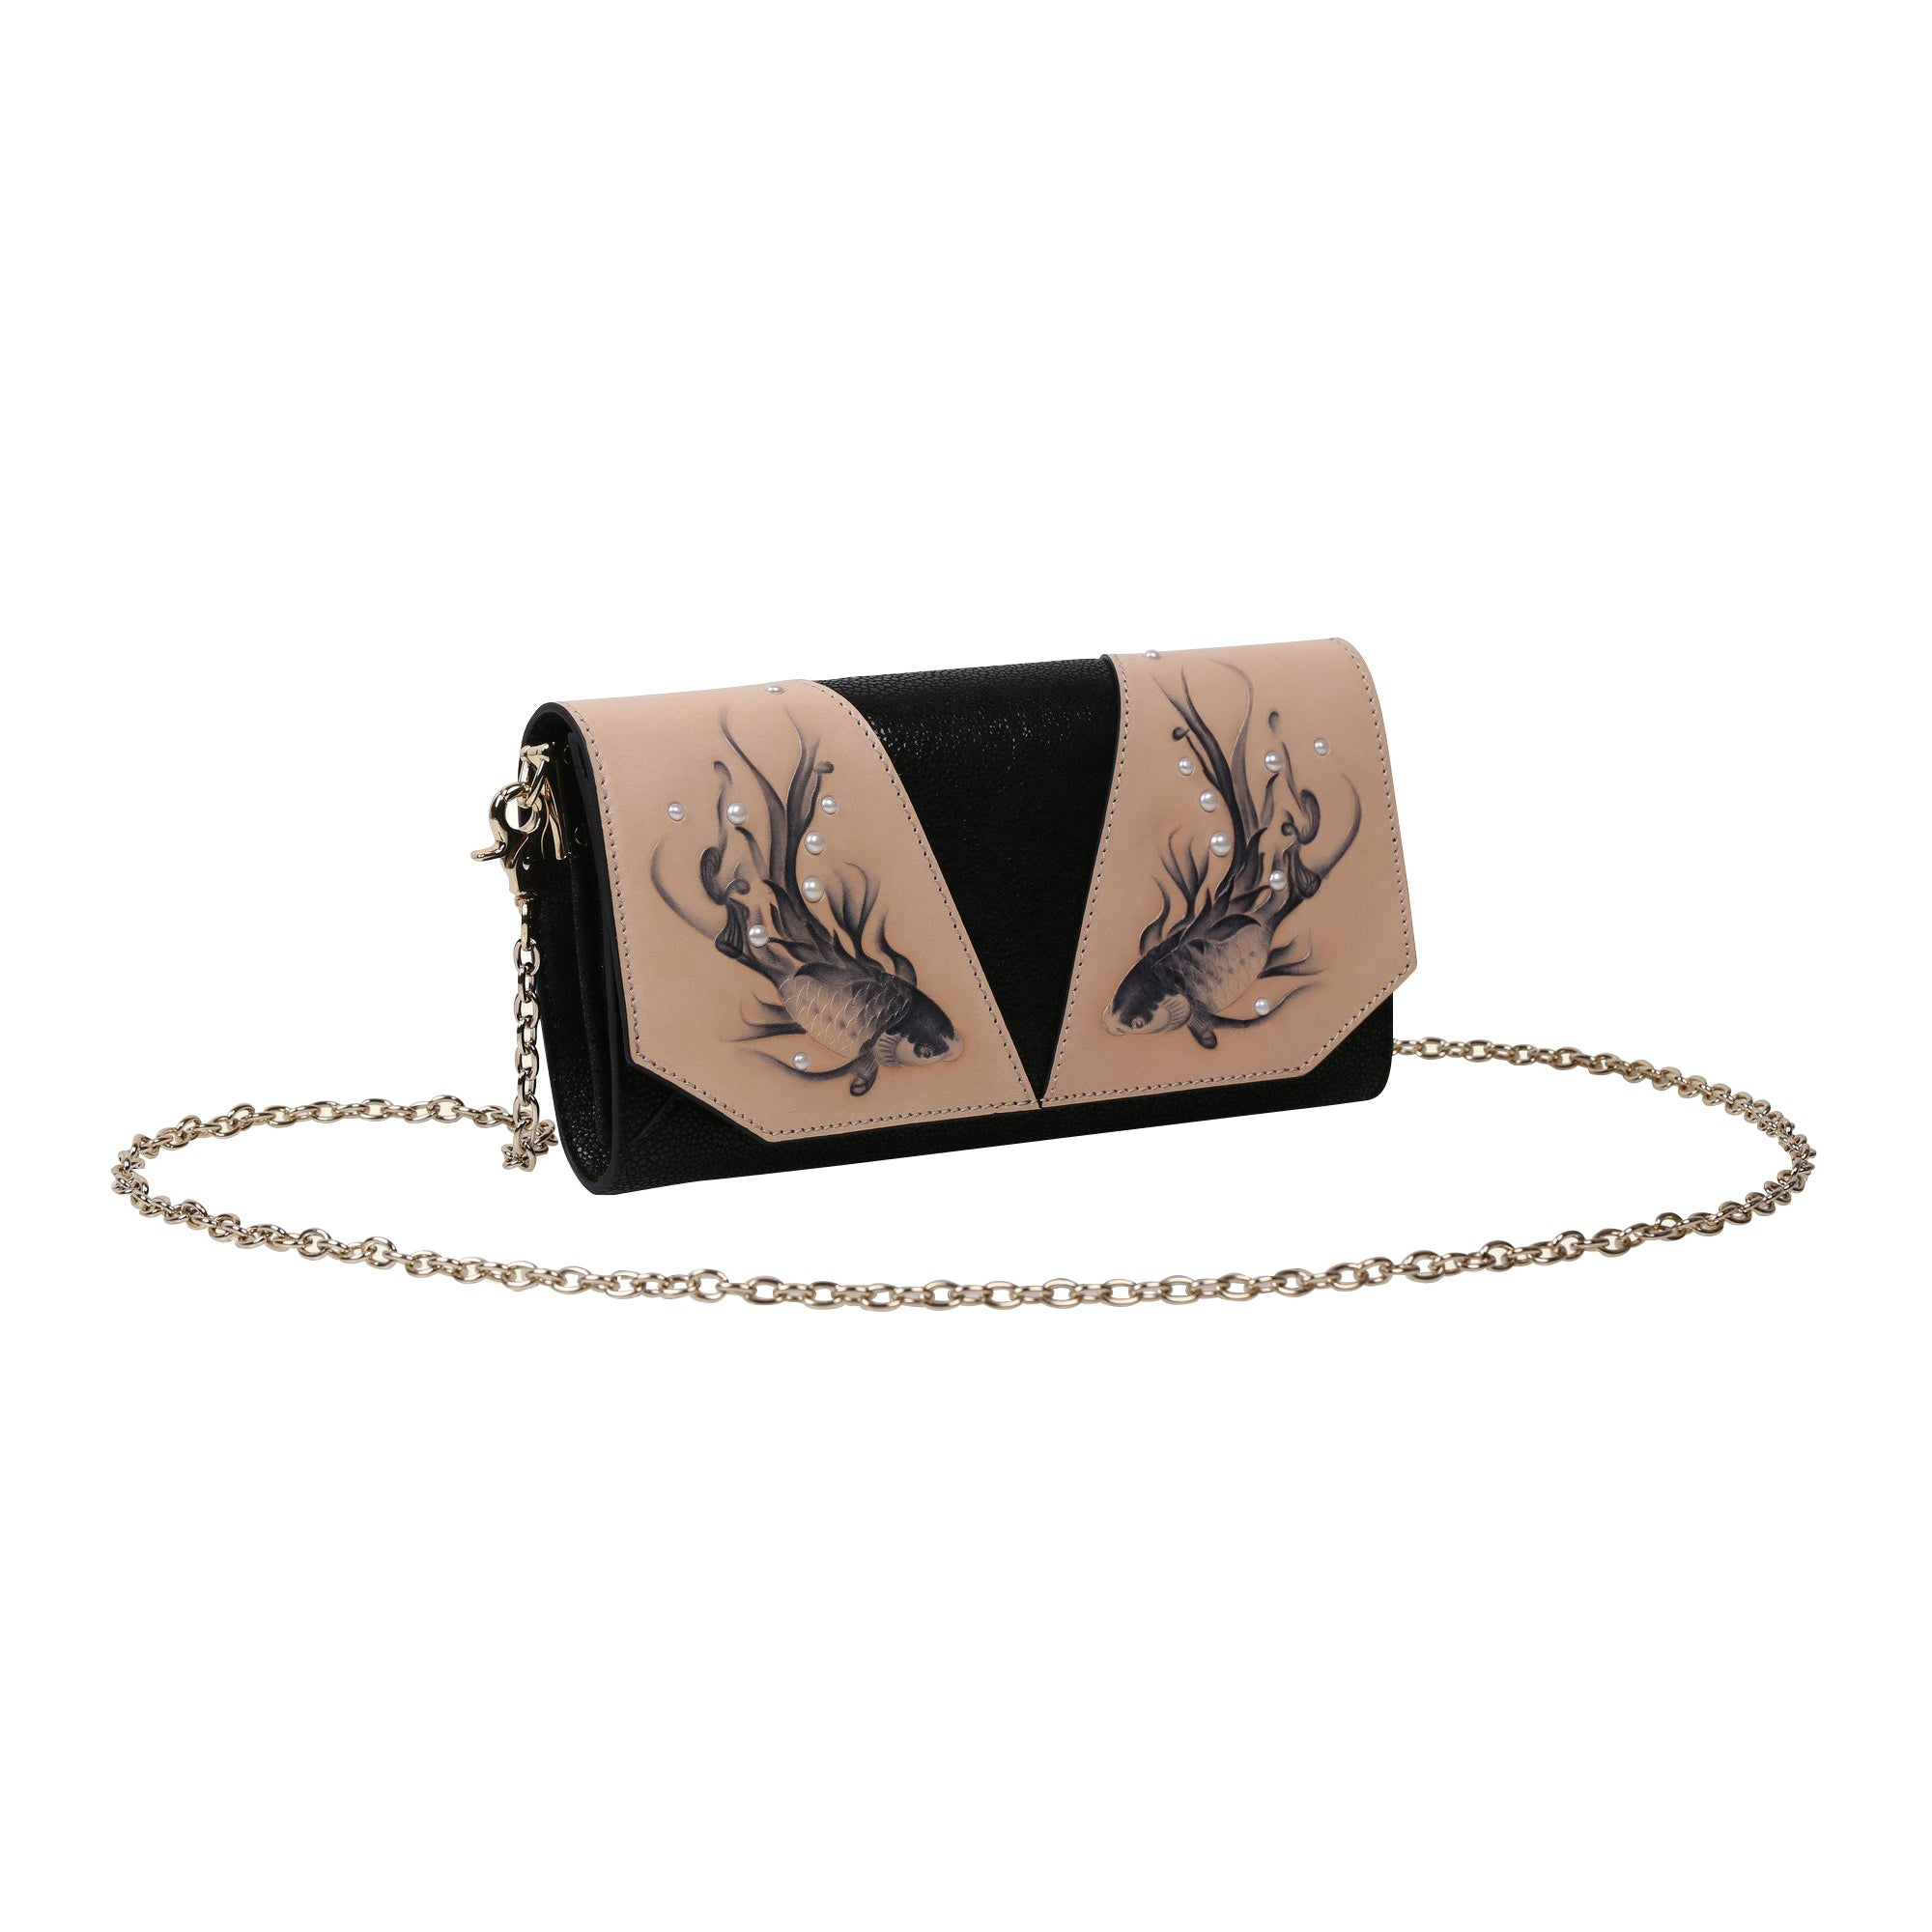 991ba2b90f Buy Bellorita Black Fish Clutch Online